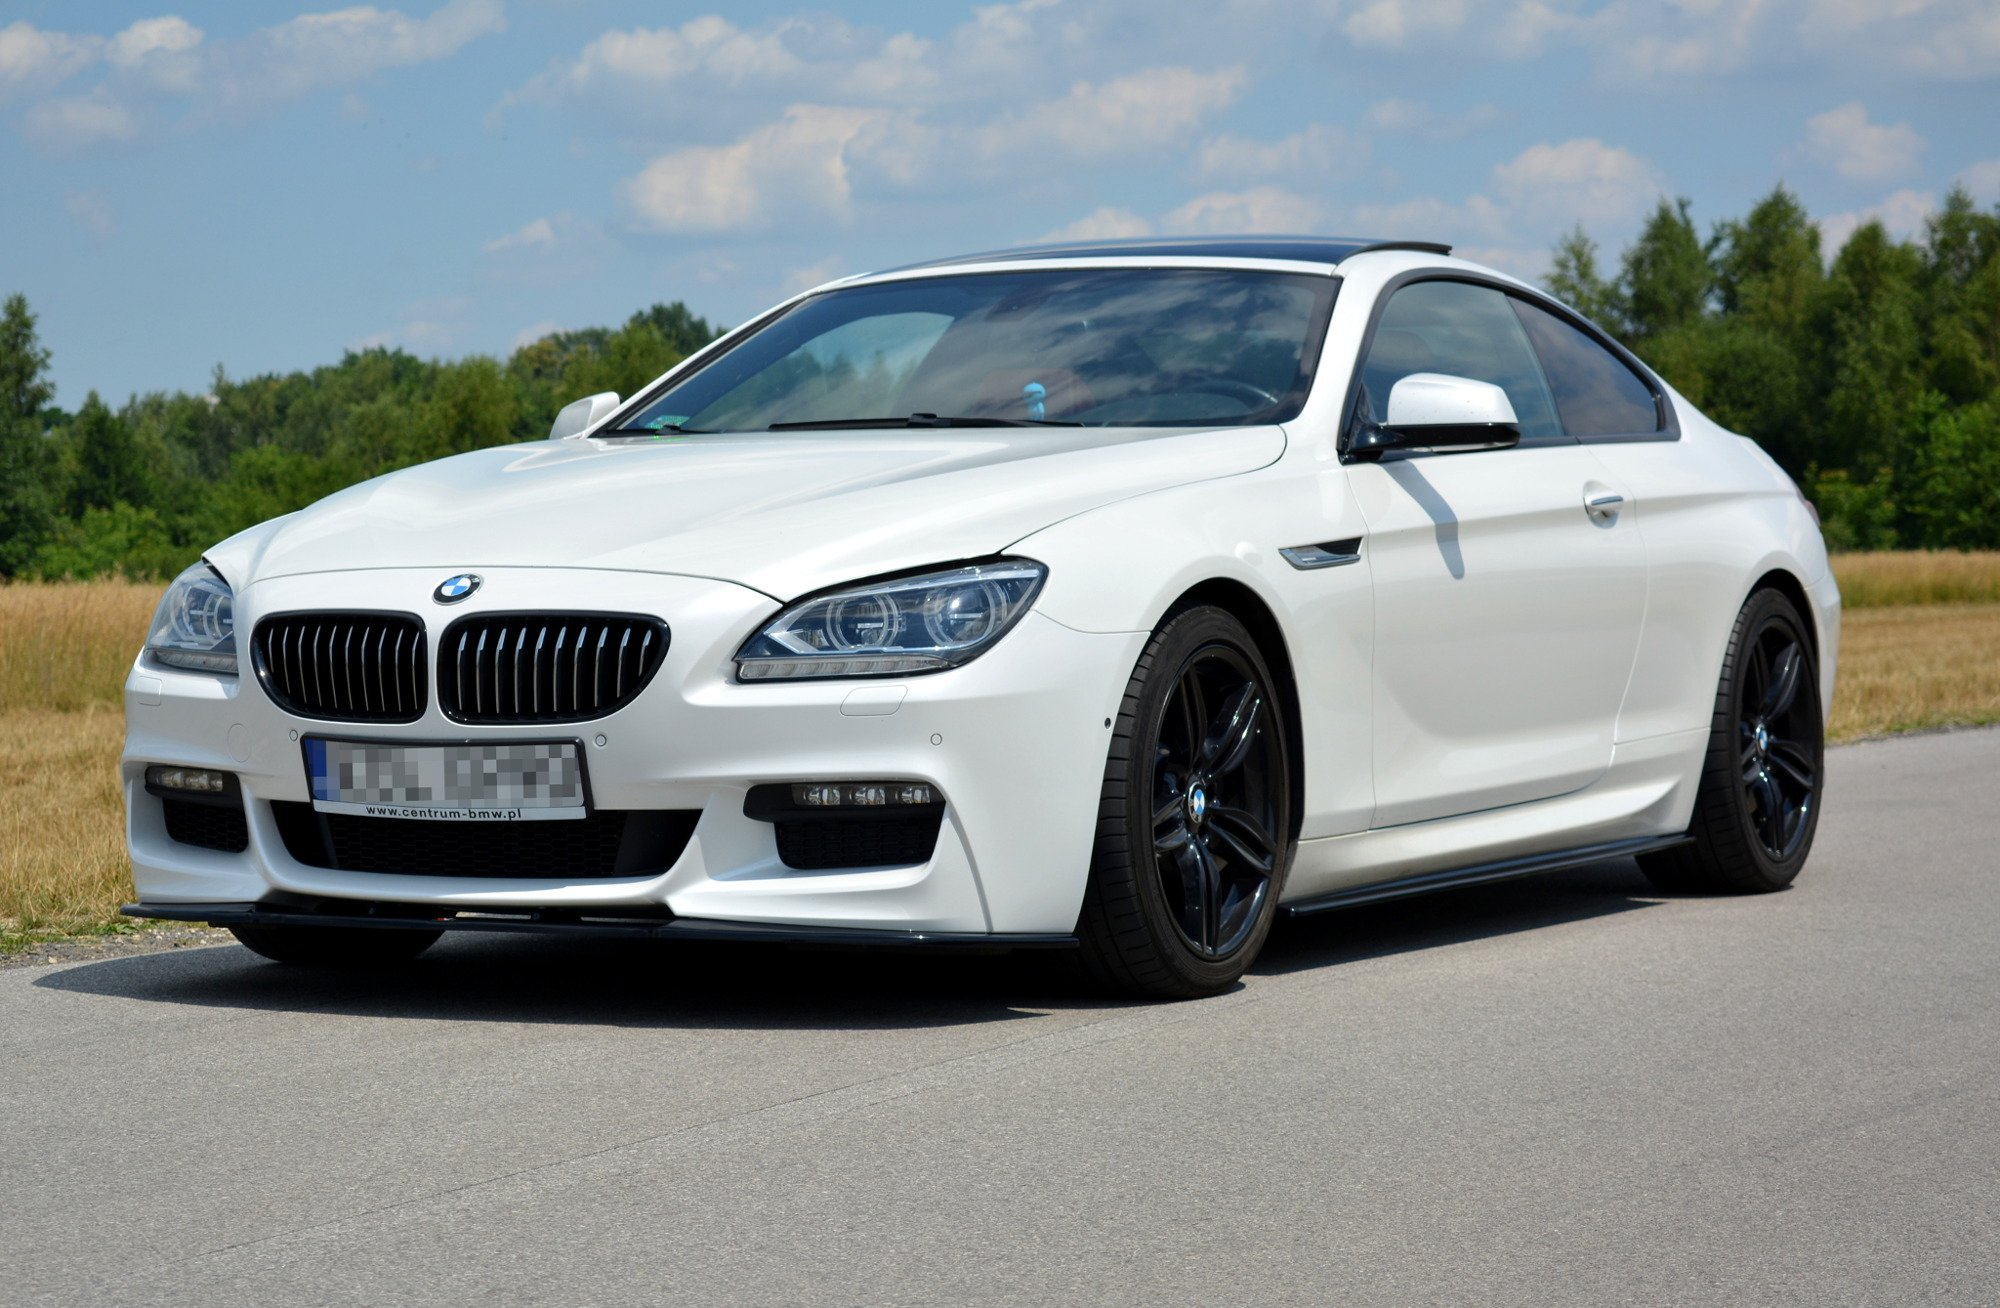 side skirts diffusers bmw 6 f13 m pack textured our offer bmw seria 6 f06 f12 f13